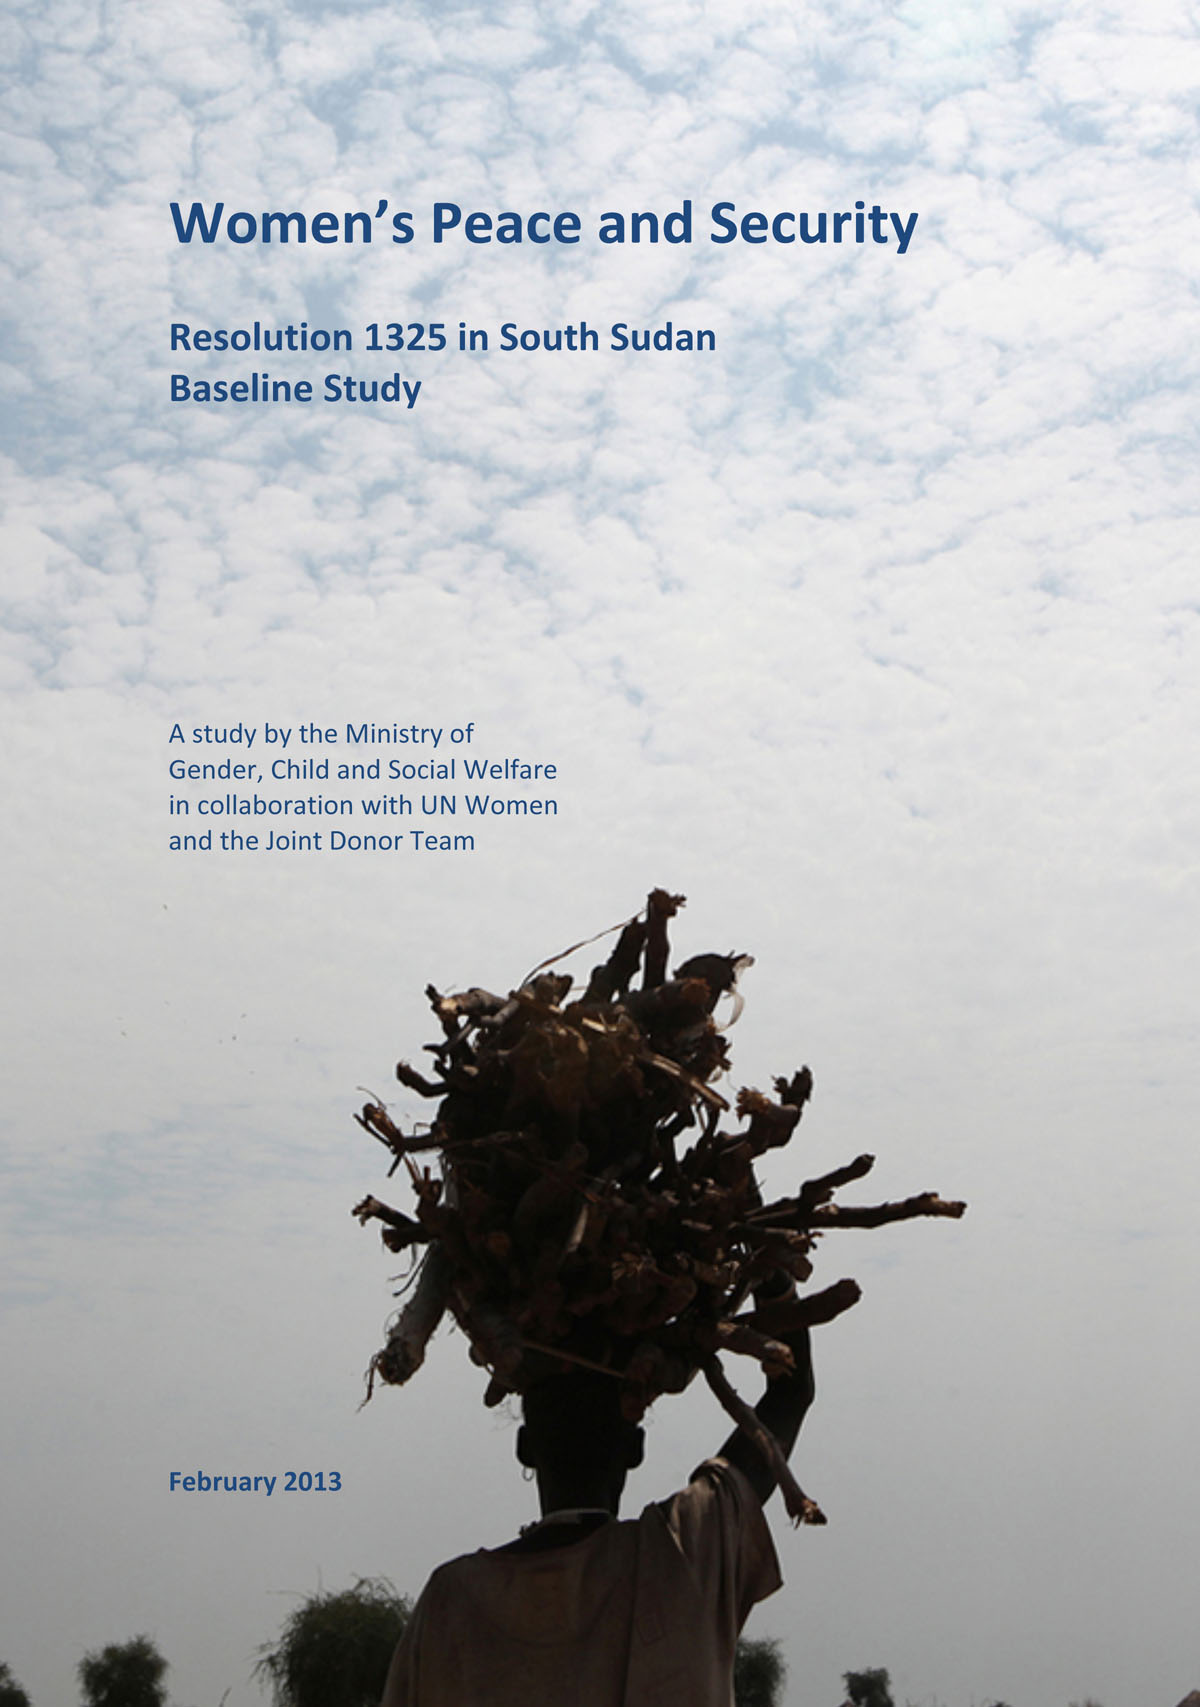 'Women's Peace and Security: Resolution 1325 in South Sudan, Baseline Study' edited and designed, February 2013